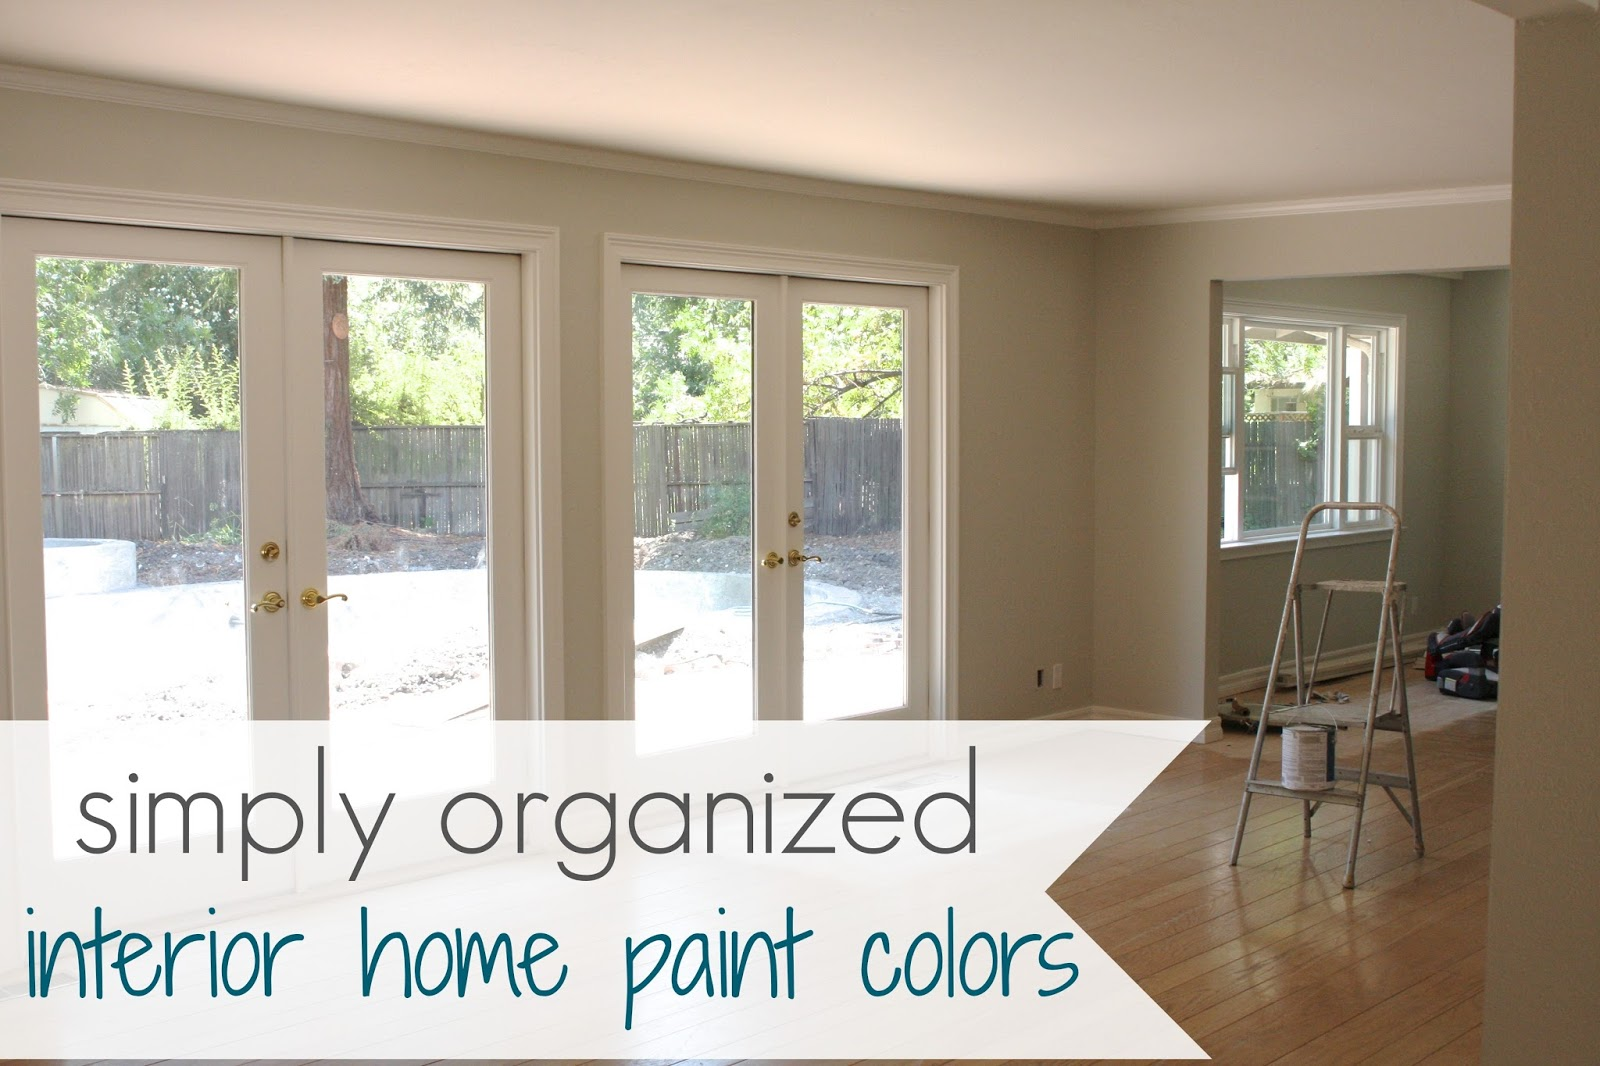 My home interior paint color palate simply organized Home interior color schemes